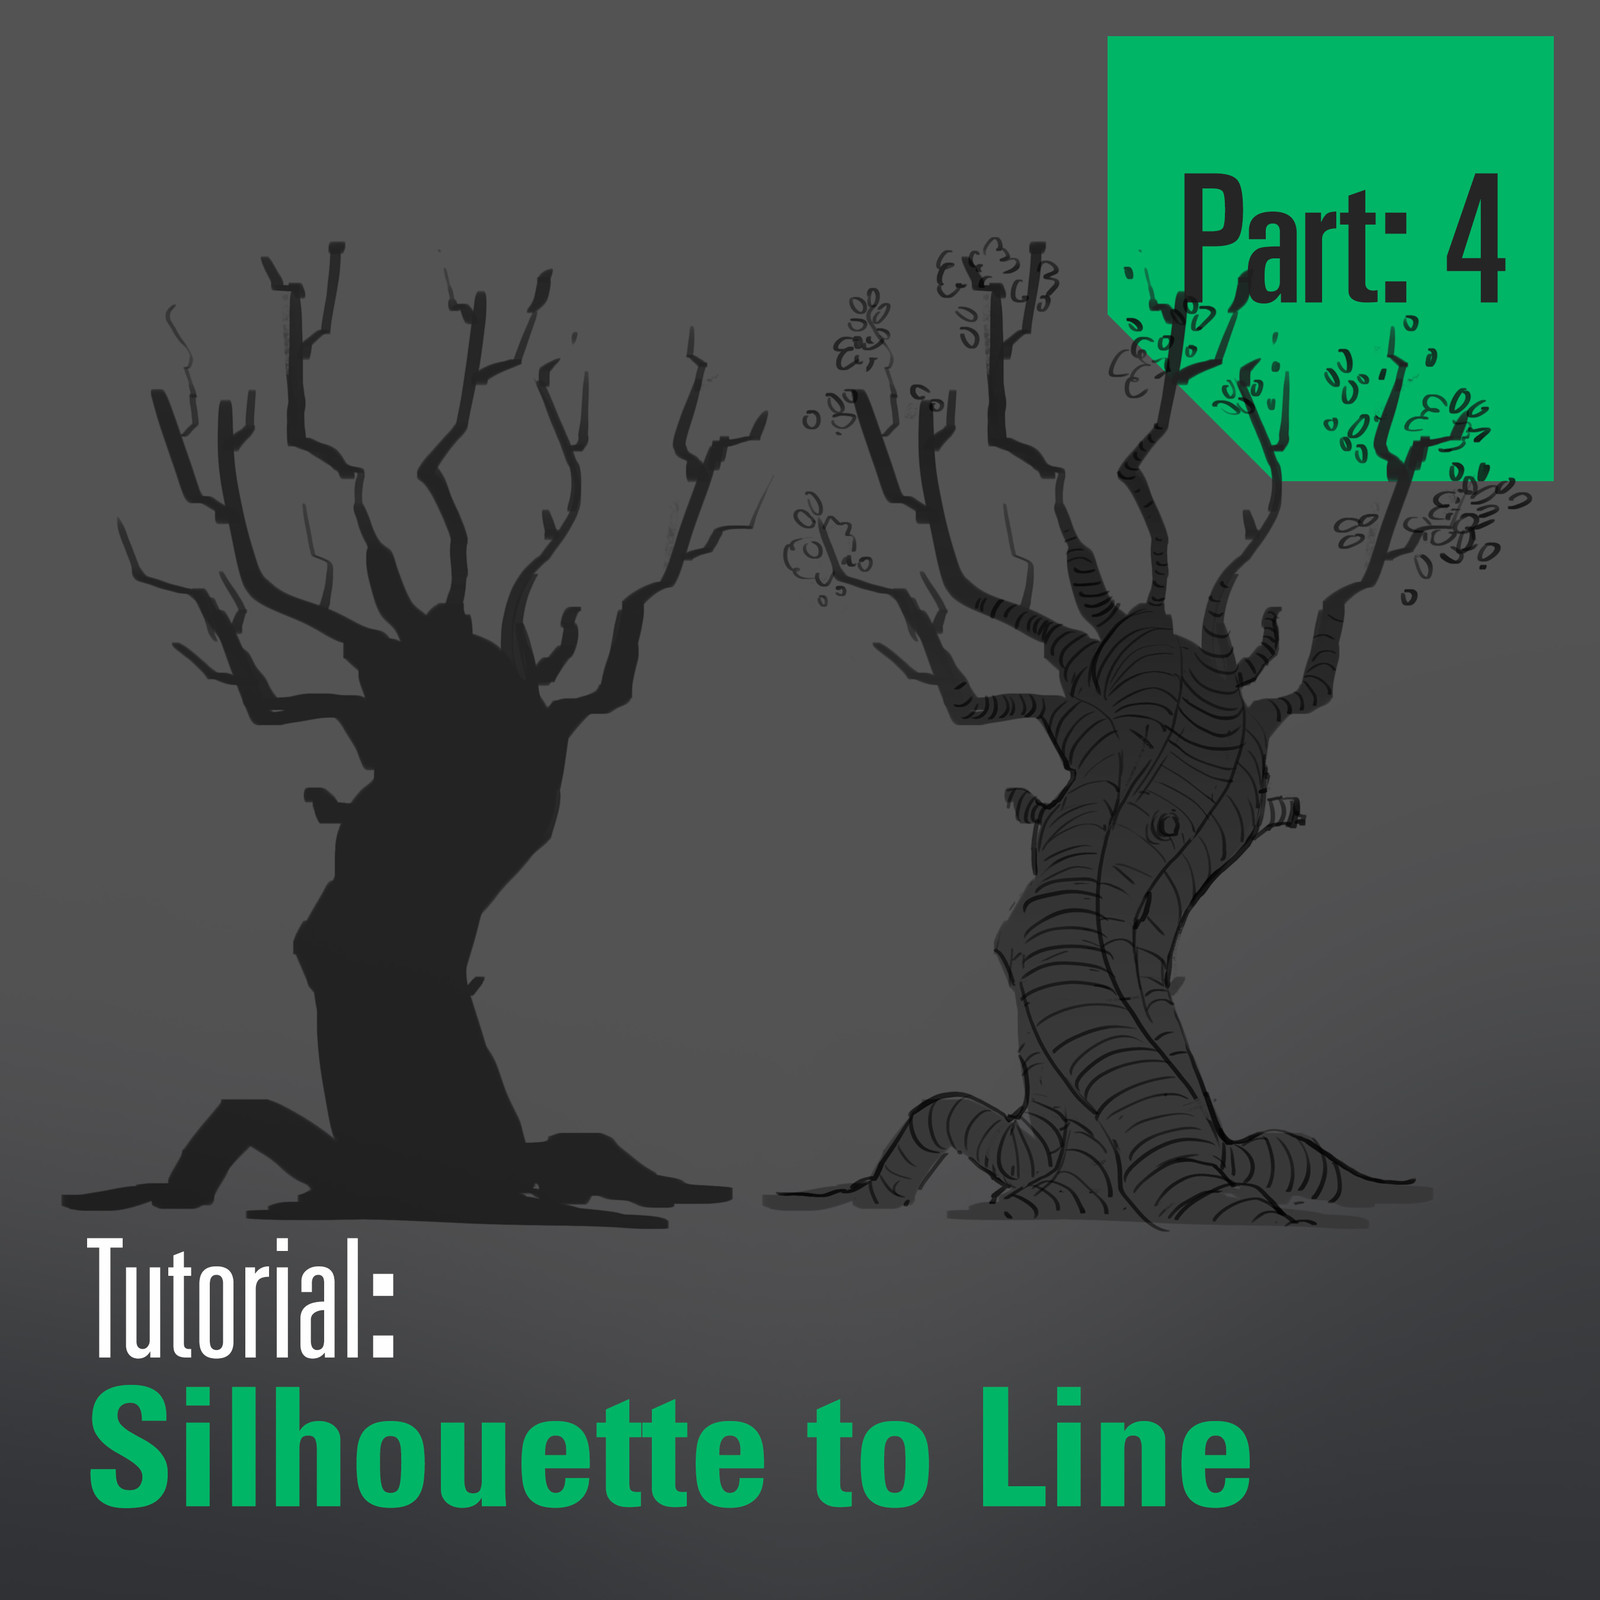 Tree Tutorial - Silhouette to Line - Part 4